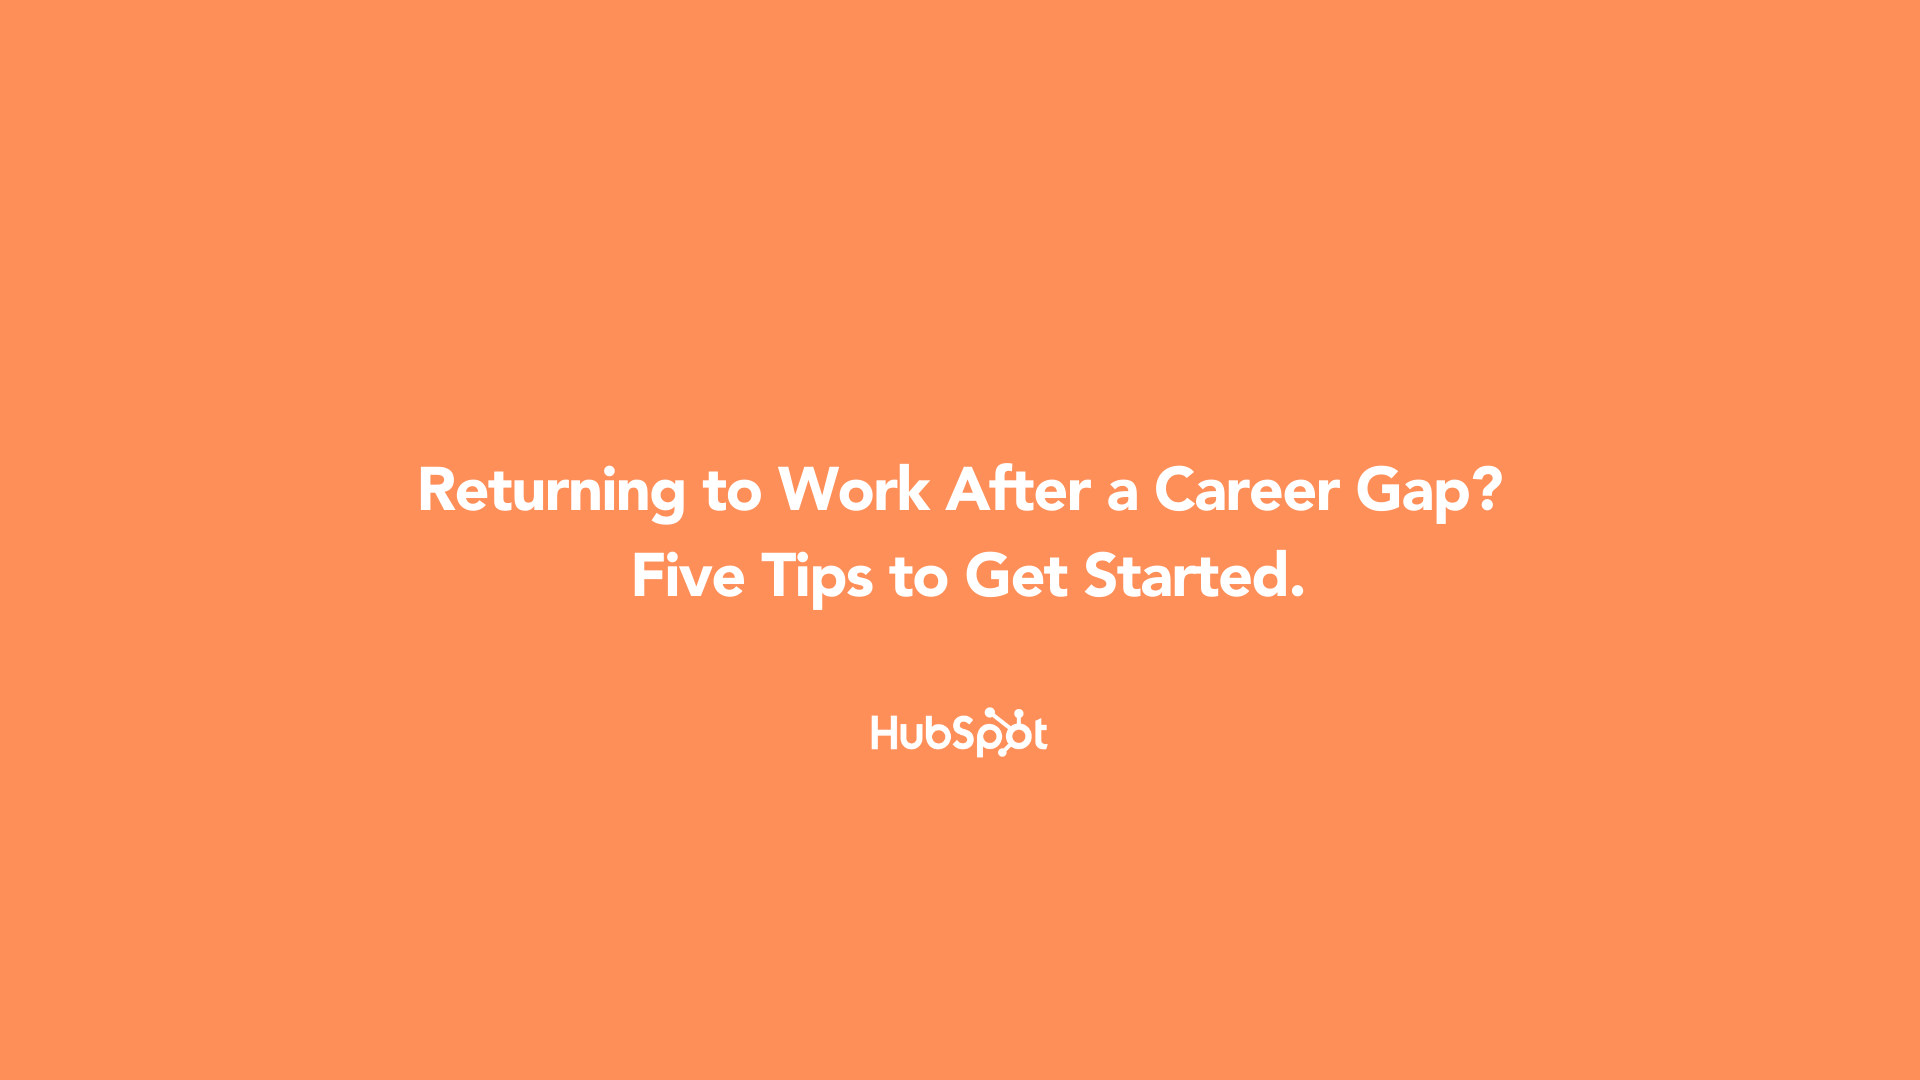 Returning to Work After a Career Gap? Five Tips to Get Started.